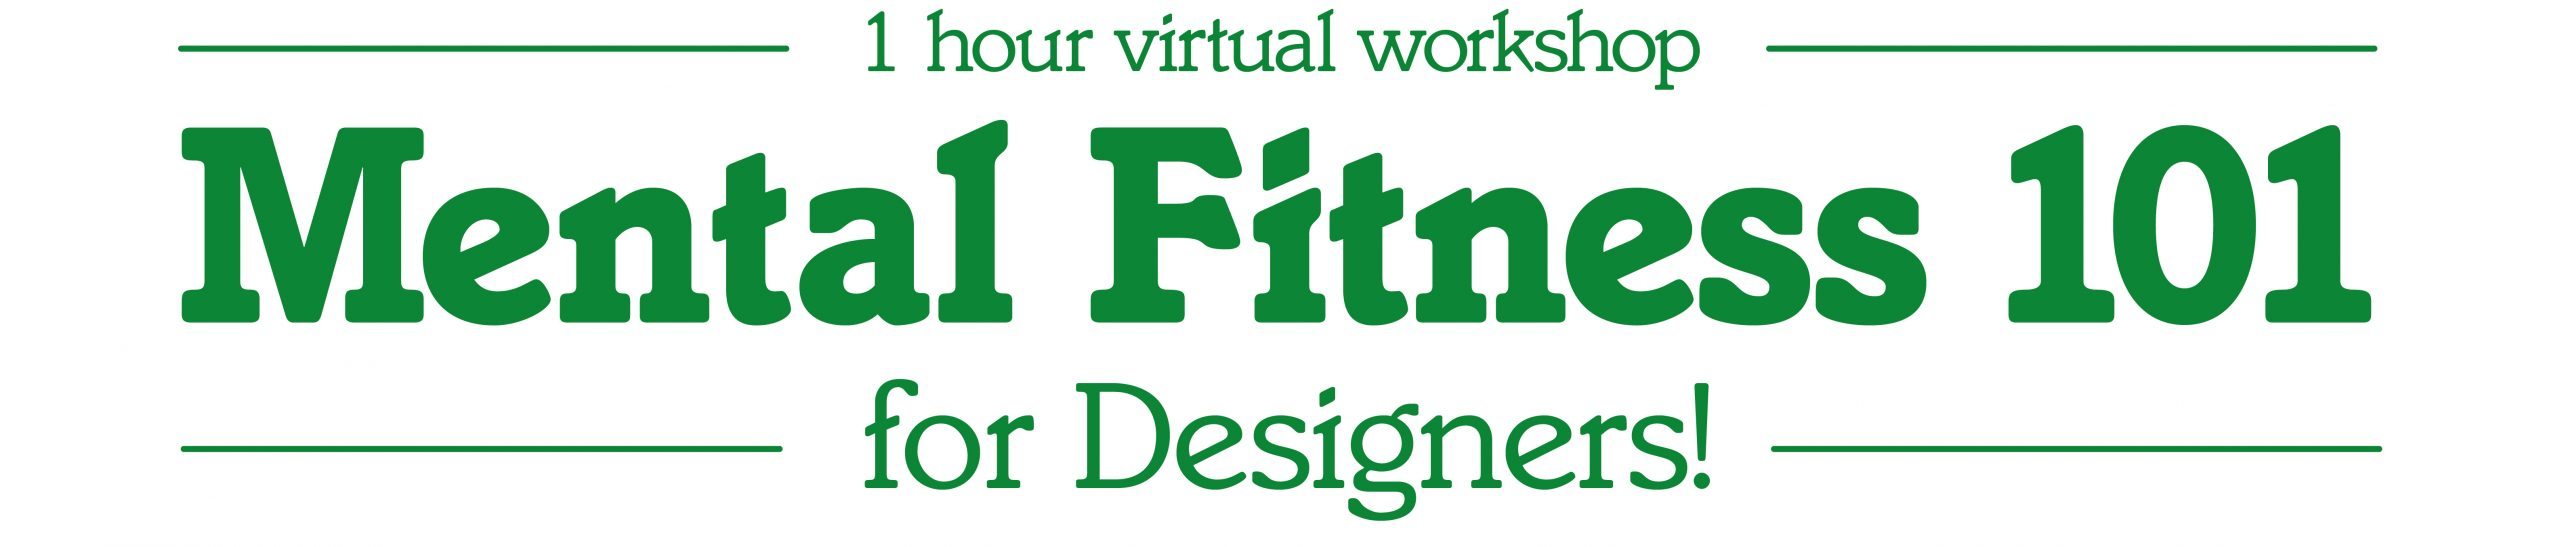 Mental Fitness 101 Workshop Banner, Creative Performer